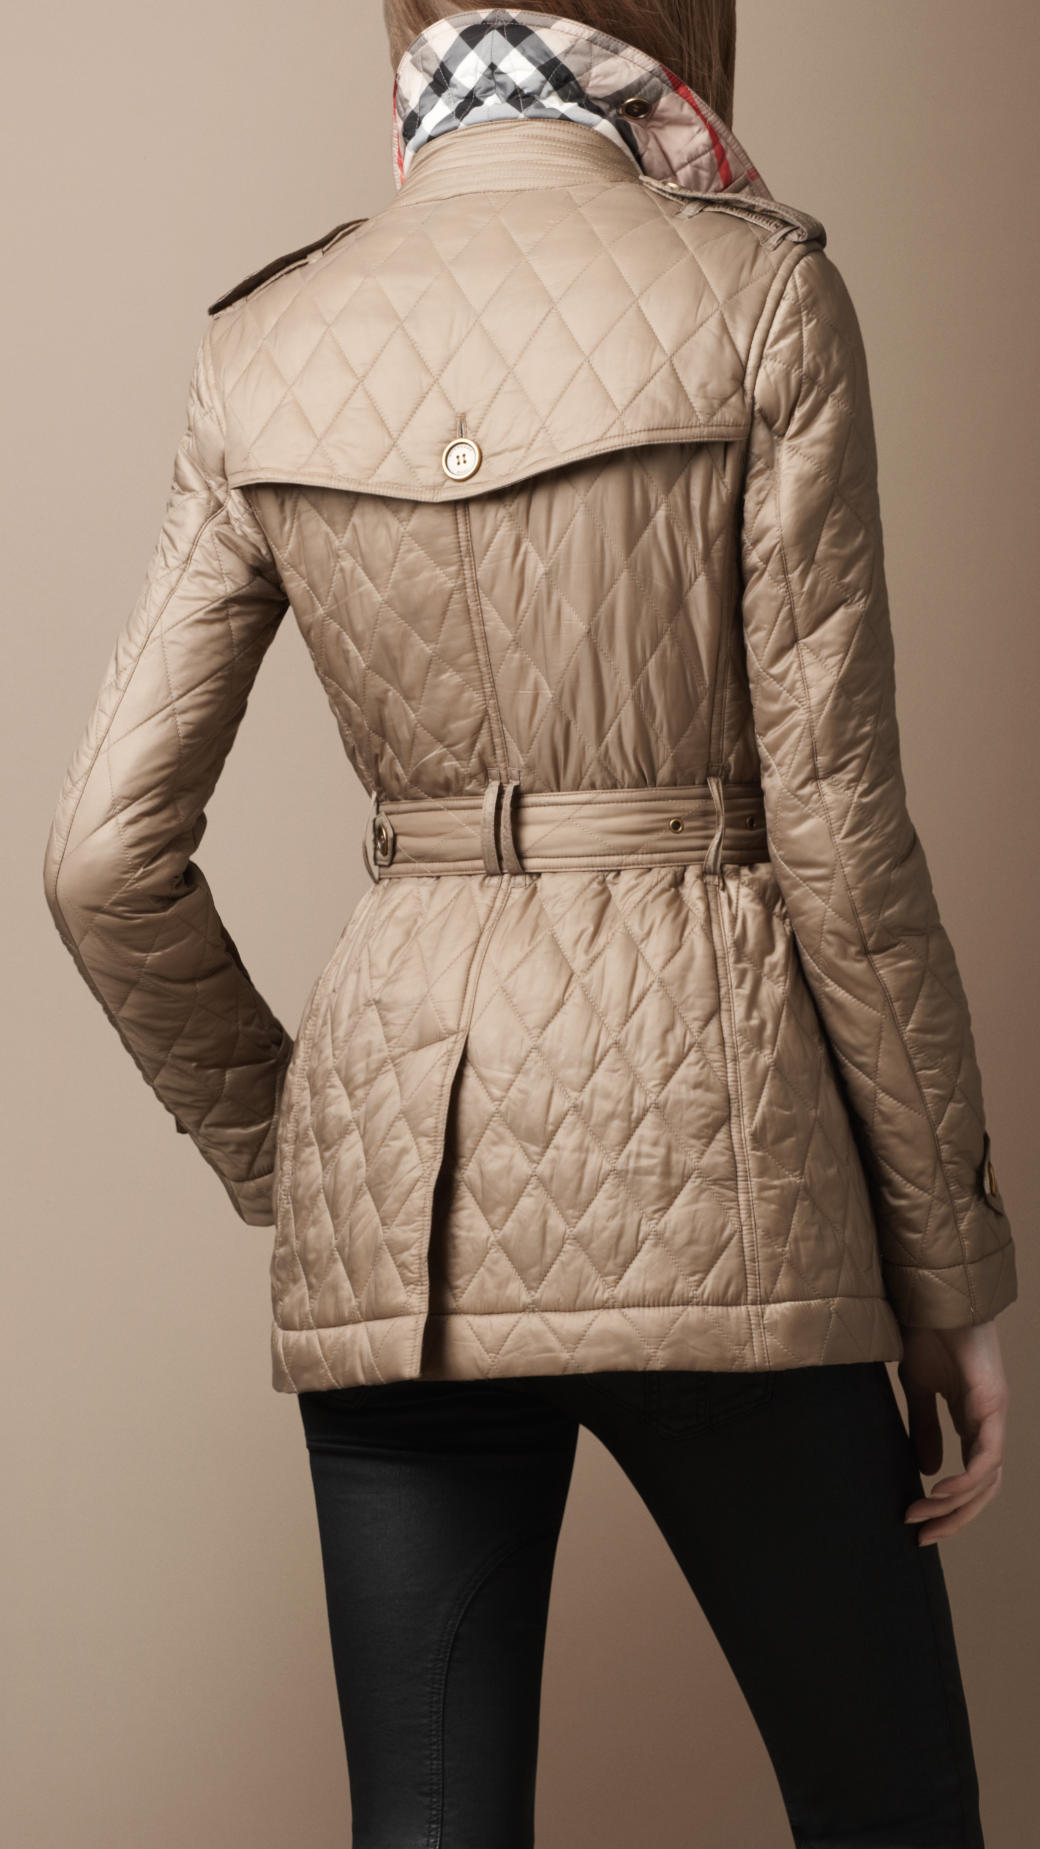 551ad1611998 Lyst - Burberry Brit Short Diamond Quilted Trench Coat in Natural